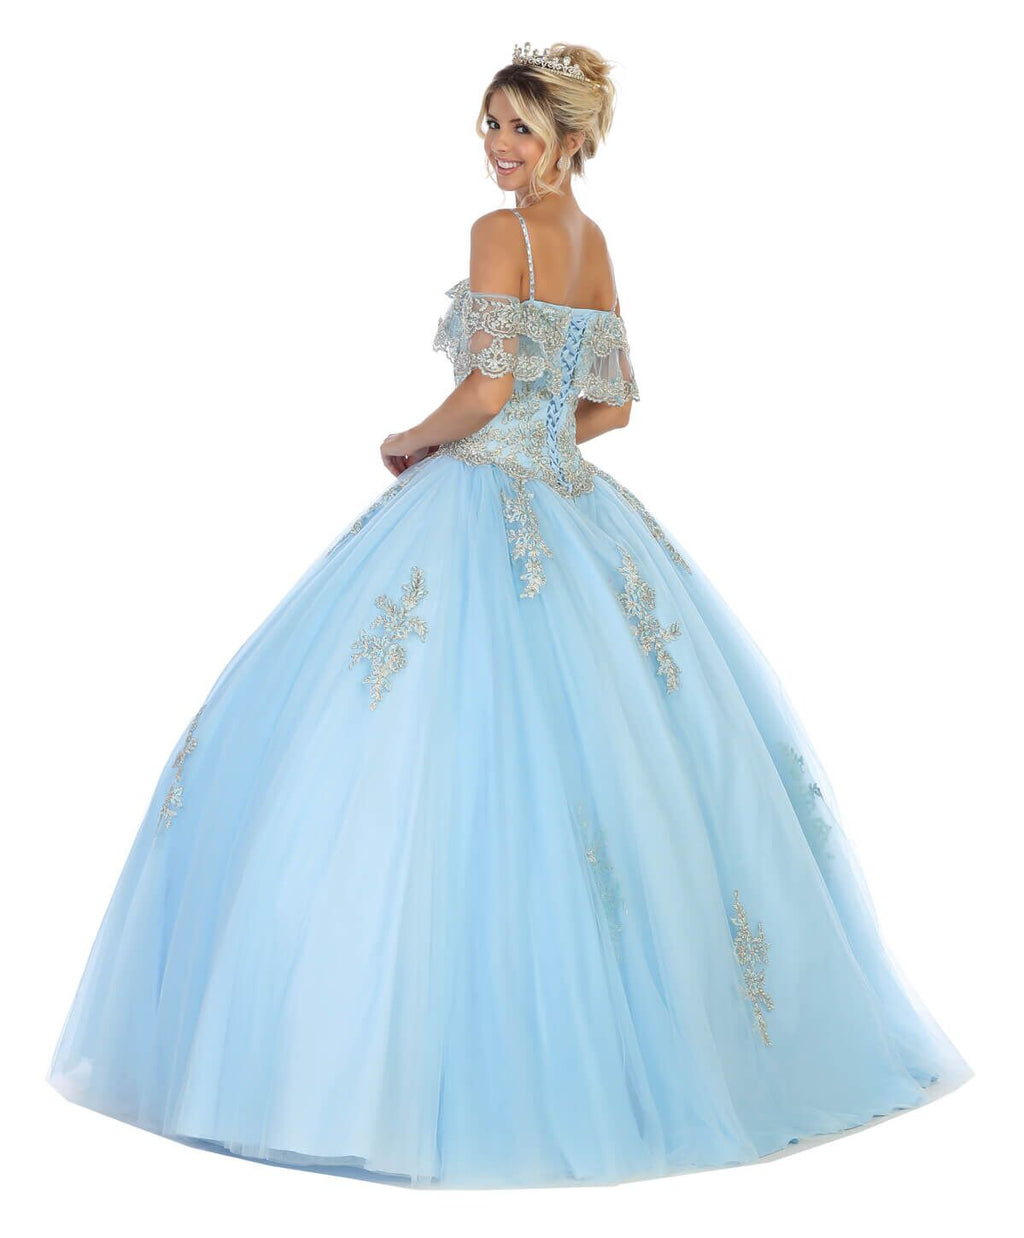 Sweet 16 Long Quinceanera Plus Size Dress - The Dress Outlet  May Queen